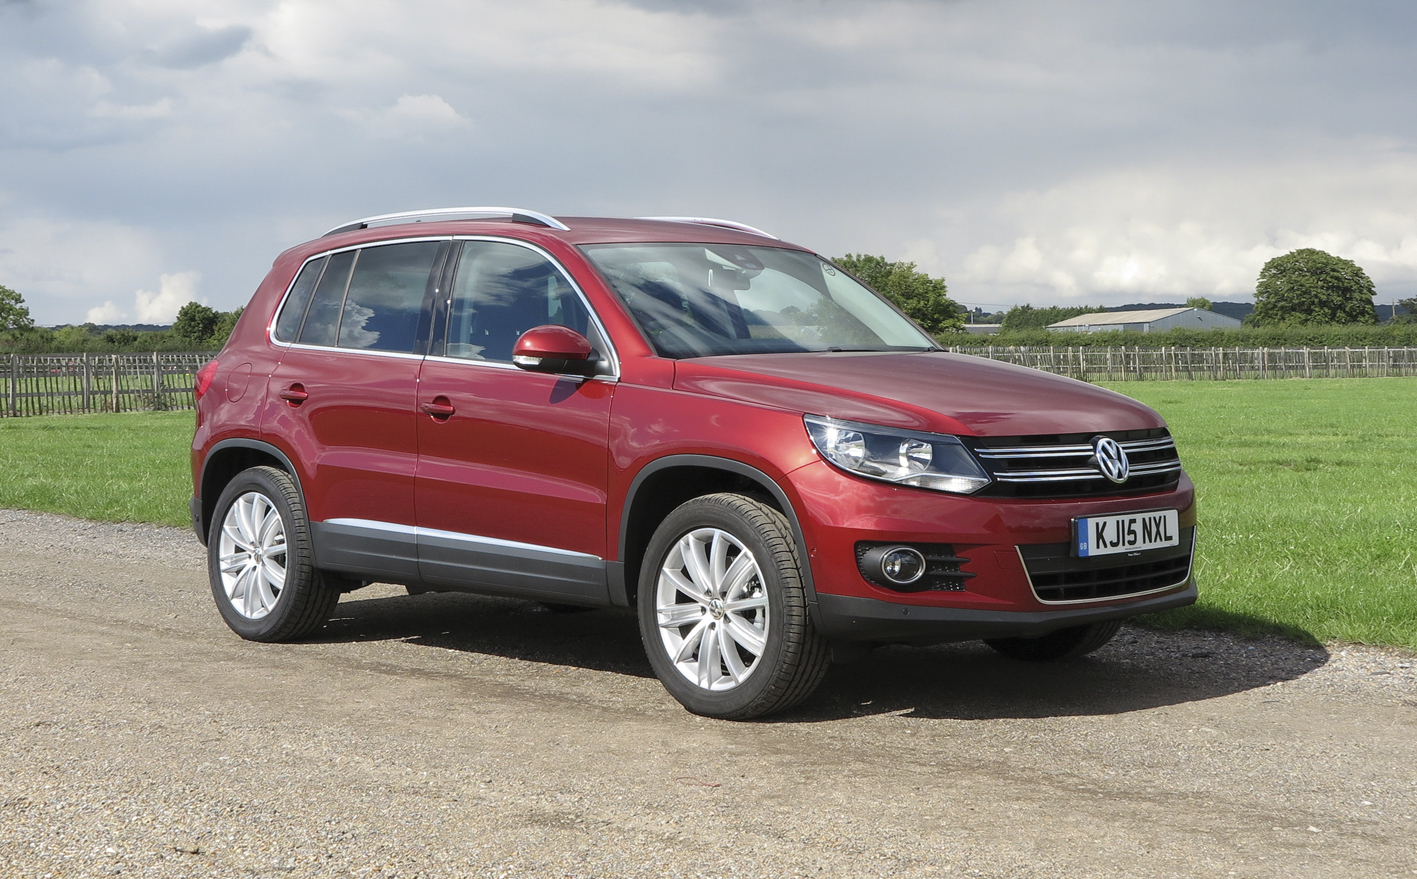 60 second on test report 2015 volkswagen tiguan match 2 0 tdi 4motion automatic diesel car. Black Bedroom Furniture Sets. Home Design Ideas